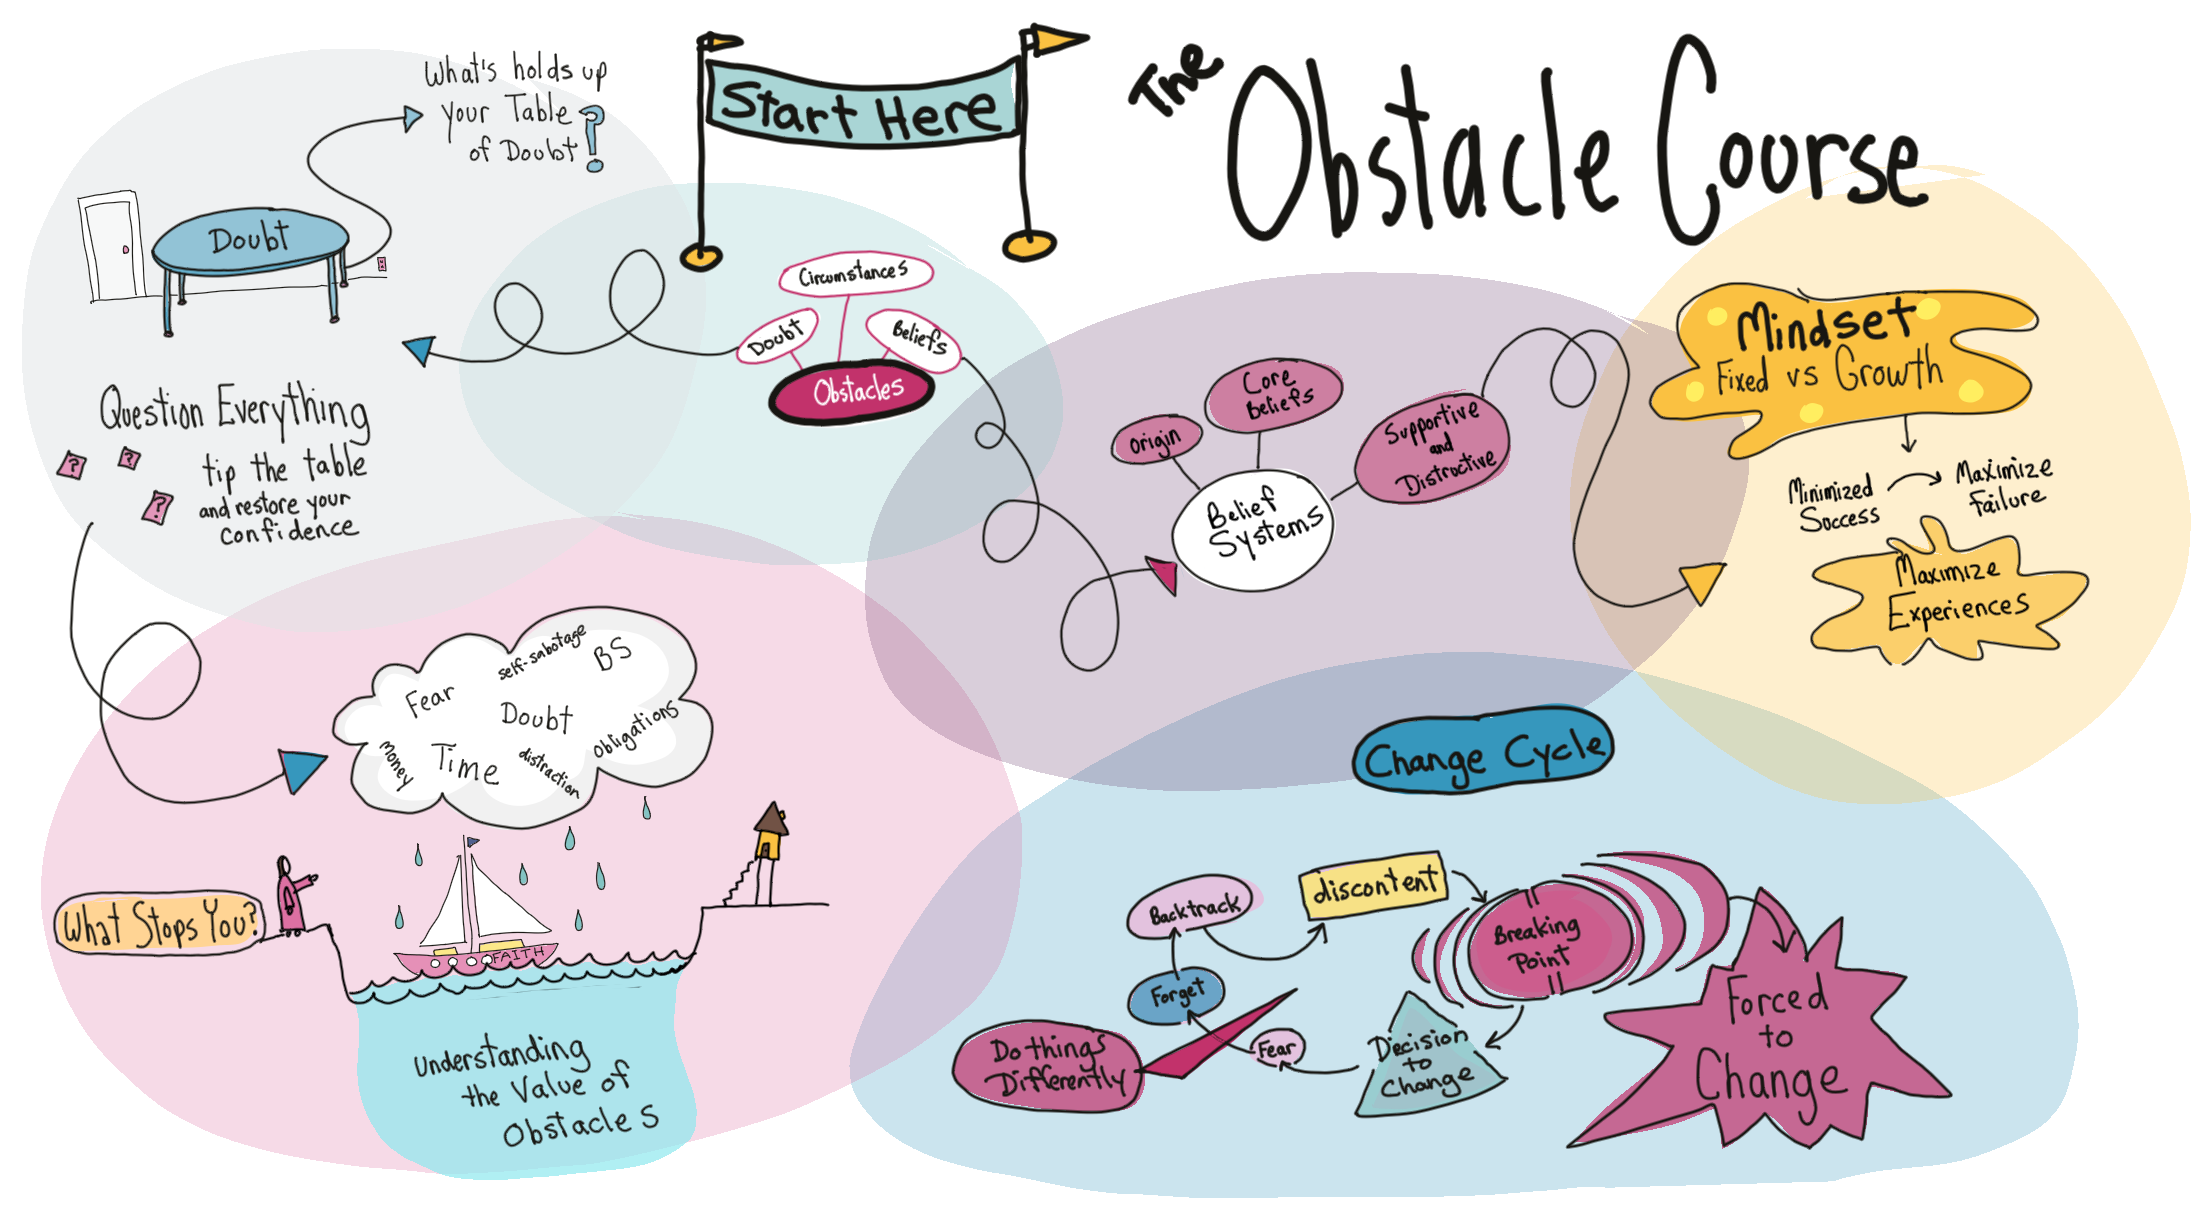 The Obstacle Course